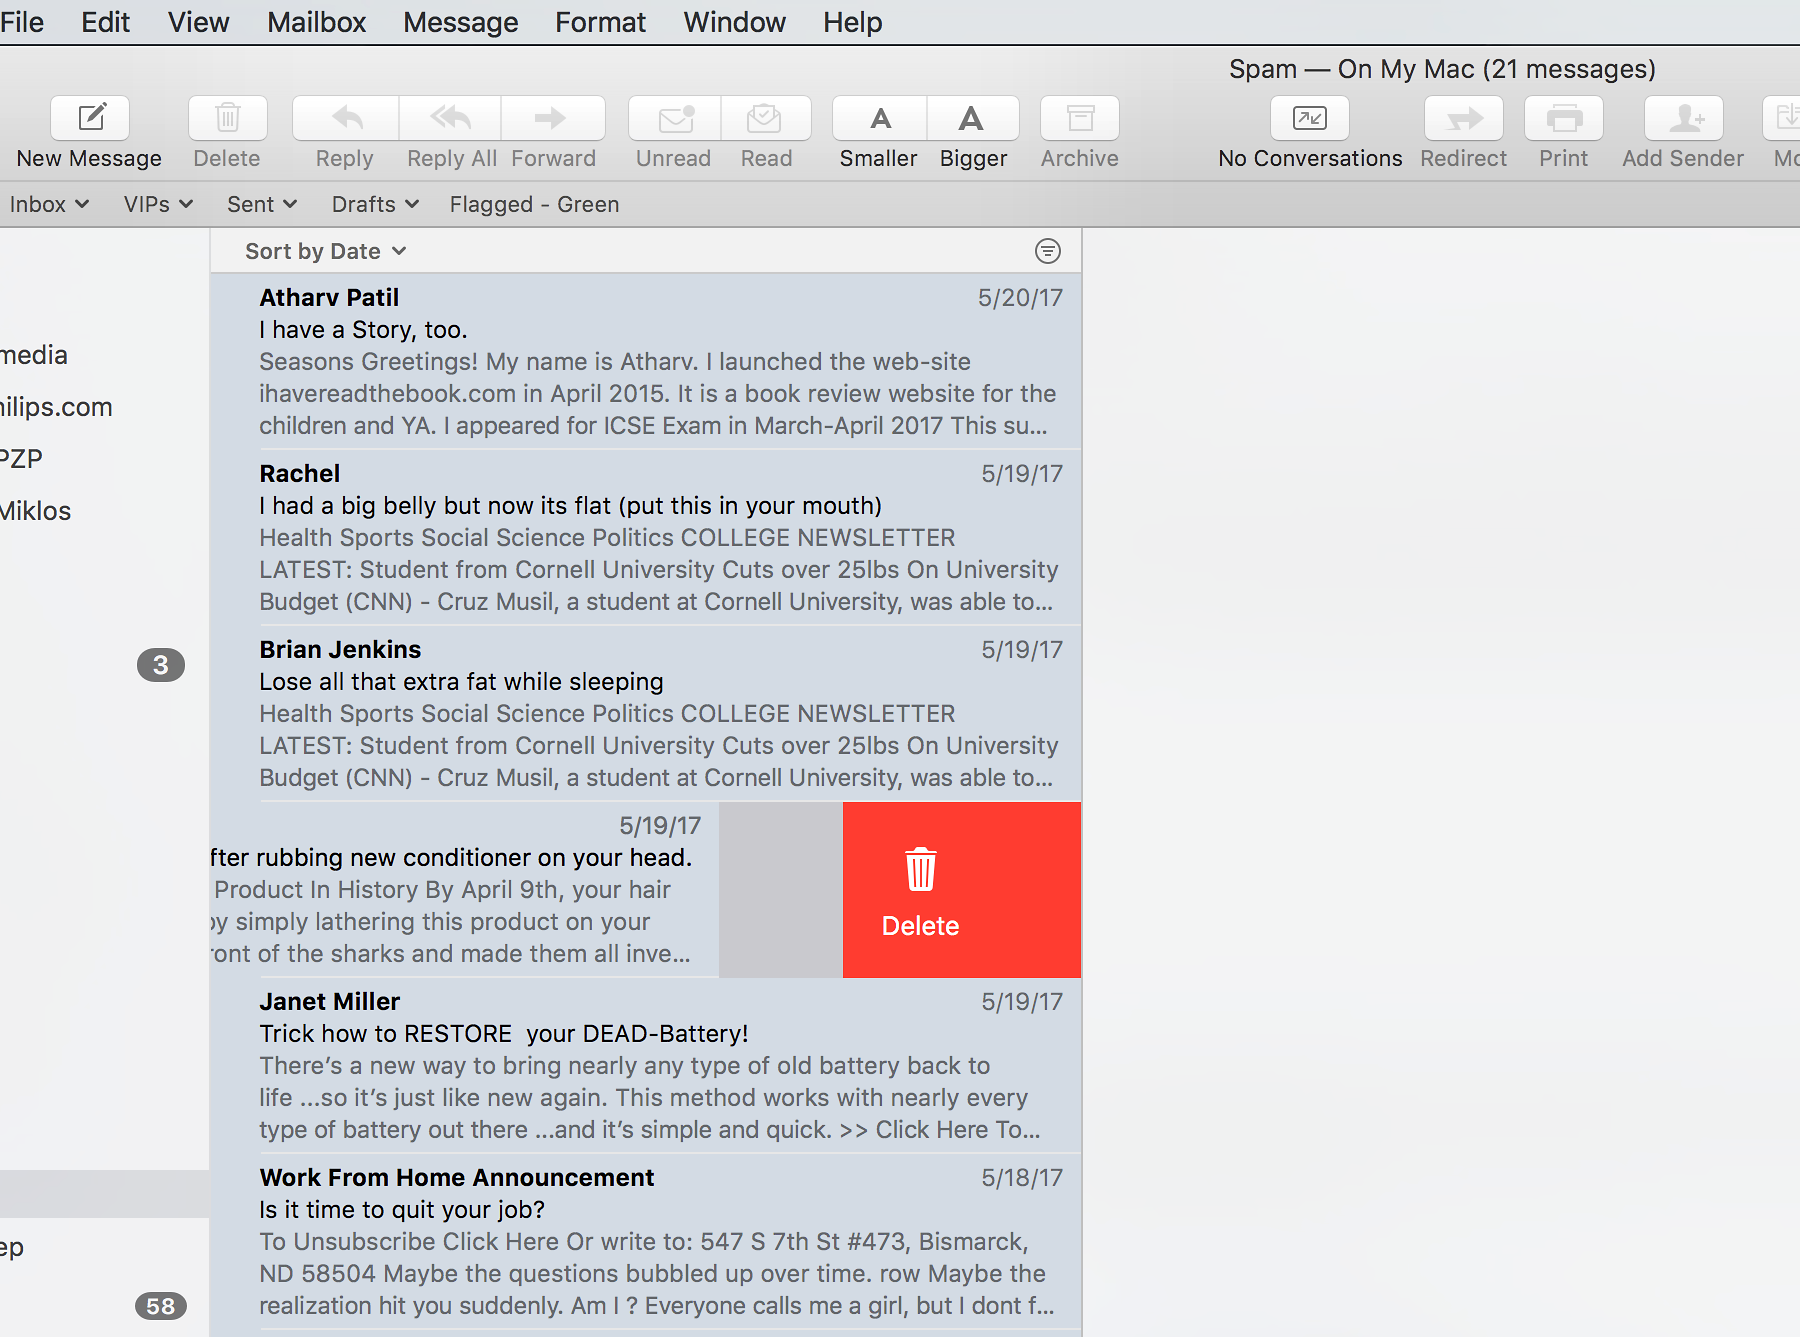 Interaction design principles violated by Apple Mail with a hidden affordance because there is no signifier